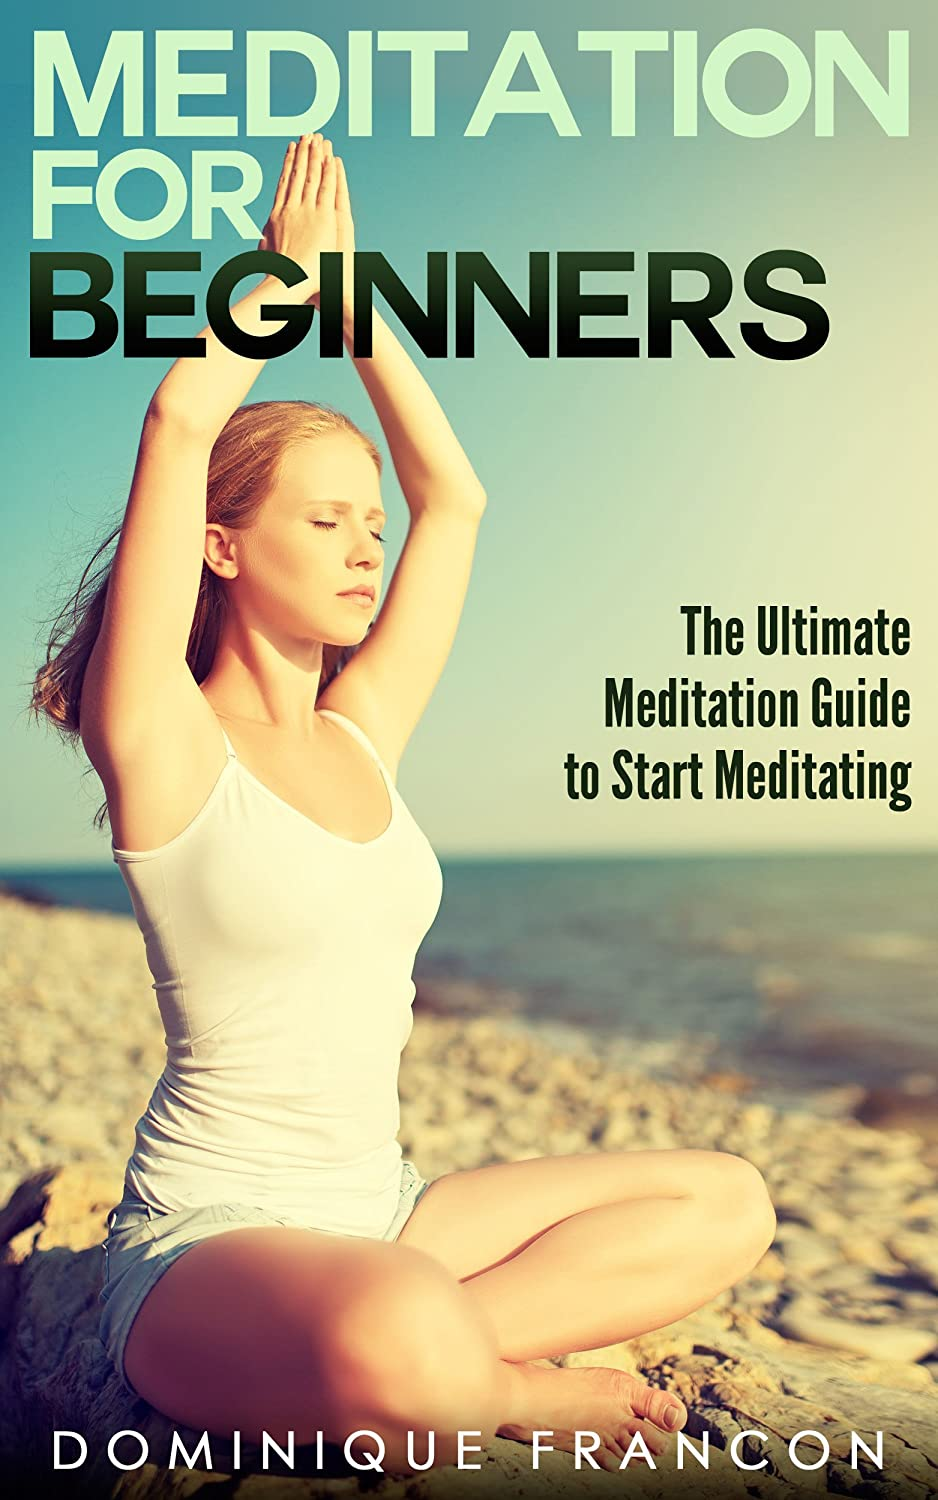 MeditationForBeginners02